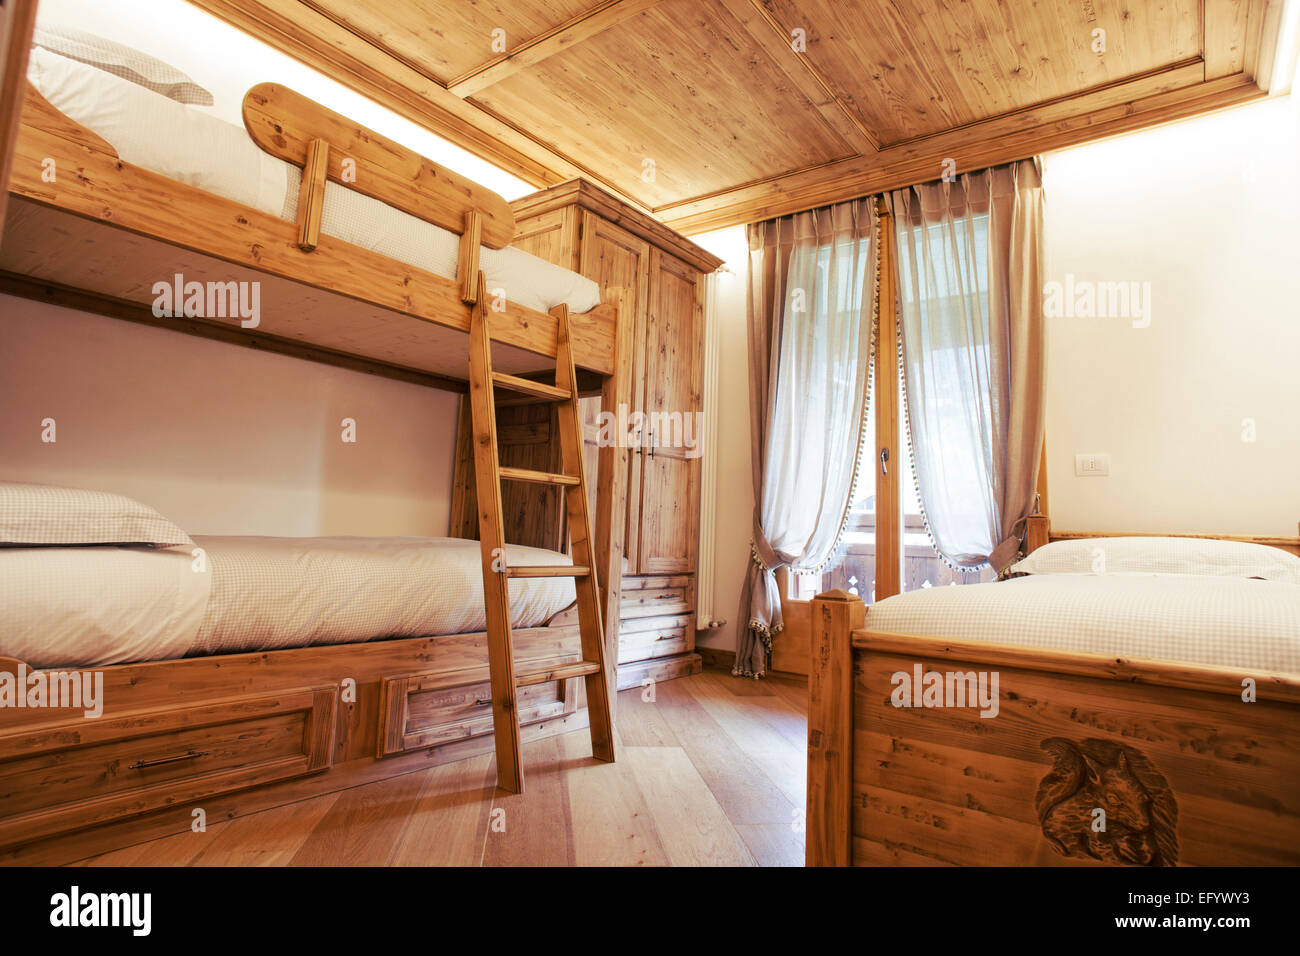 Triple Room With Single And Bunk Beds In A Childrens Bedroom